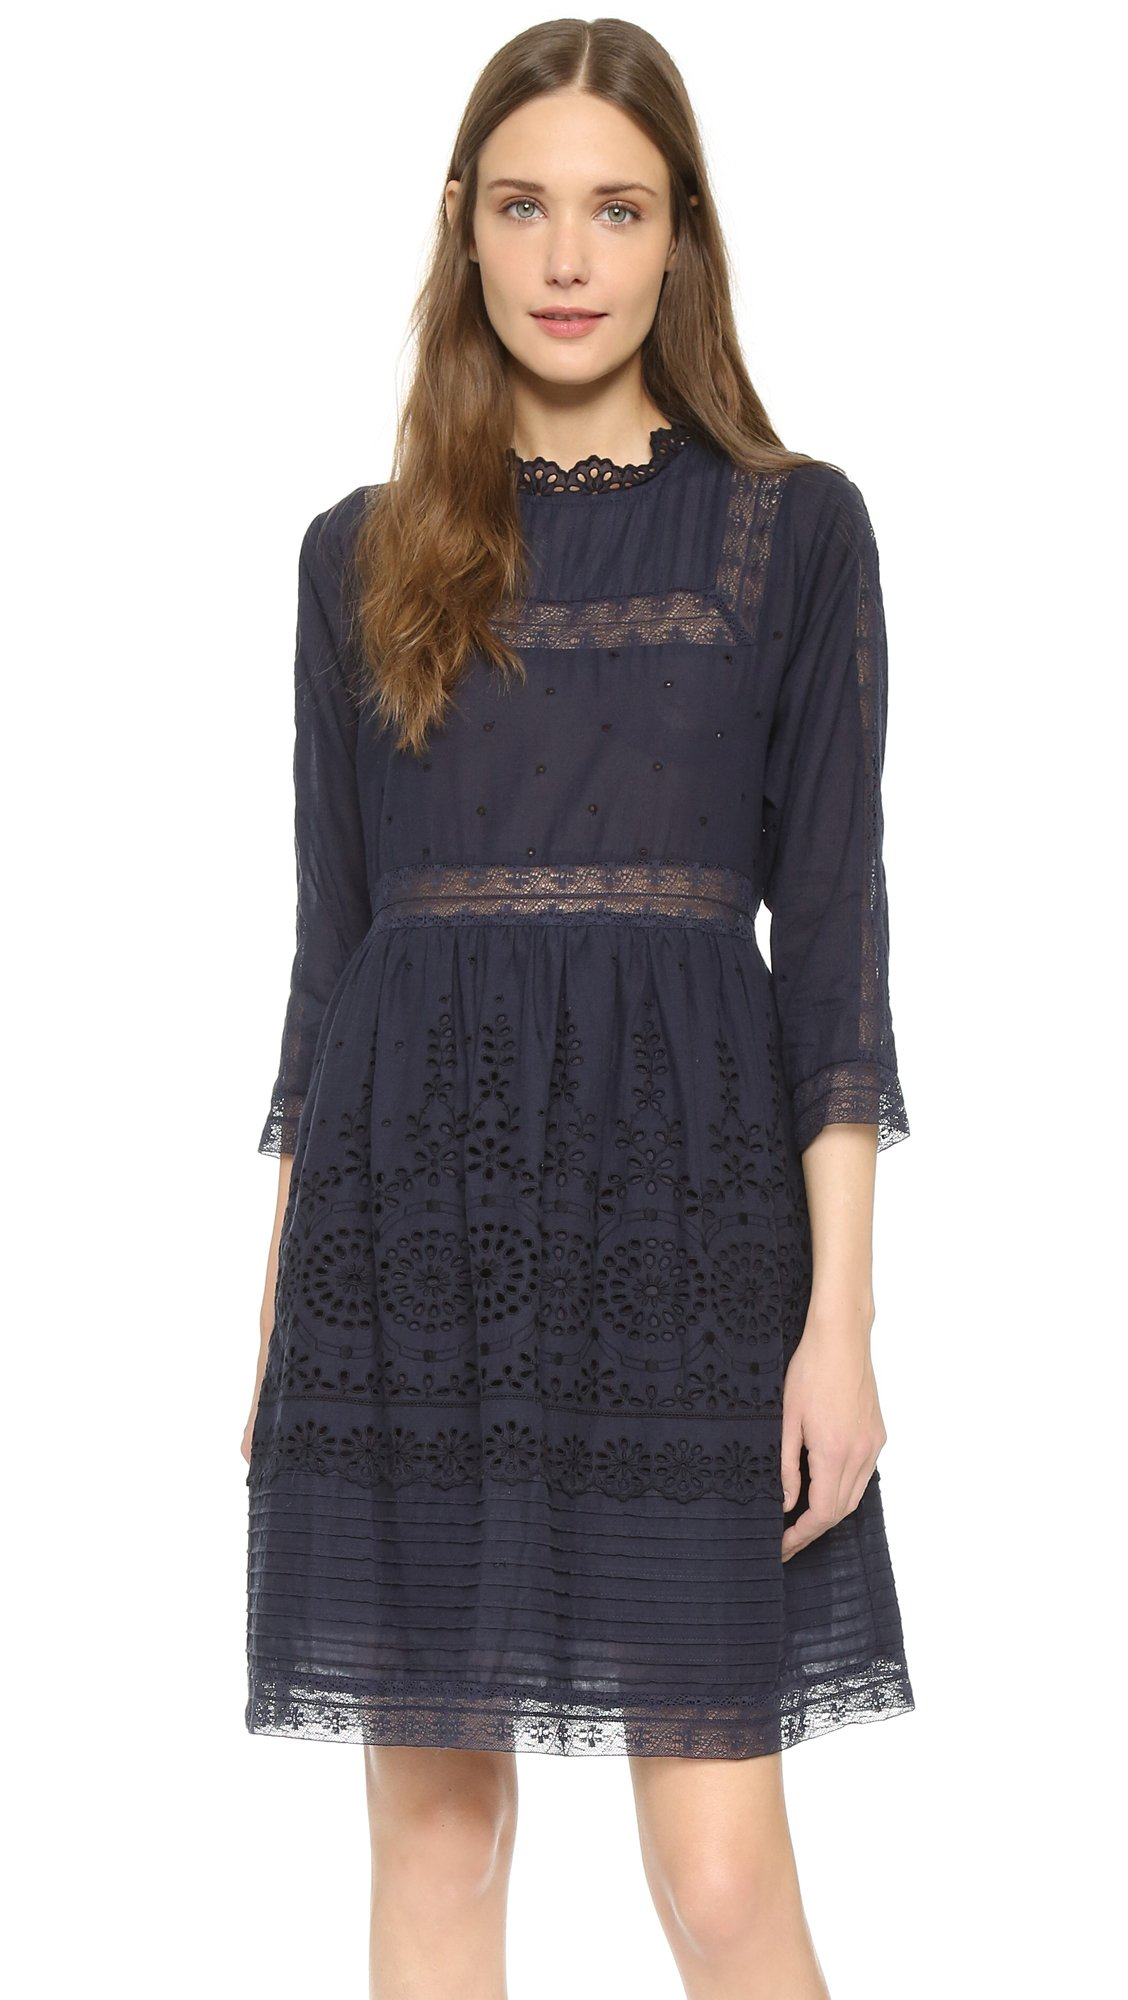 Sea Eyelet Lace Combo Dress - Navy in Blue | Lyst